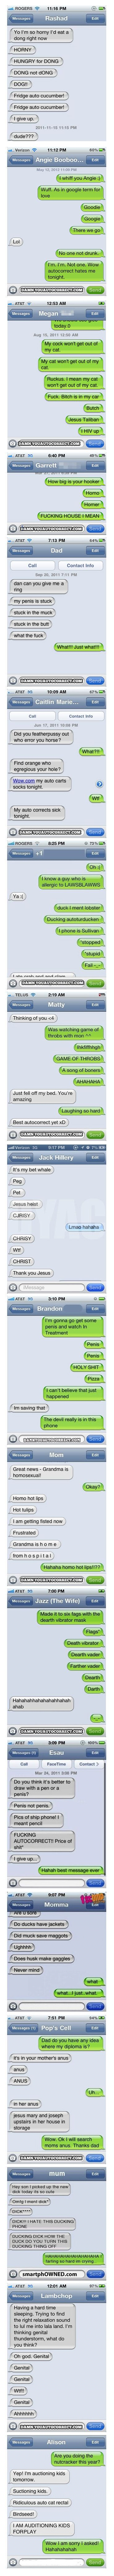 18 reasons not to own a smartphone. Best Autocorrect Struggles I laughed myself to…